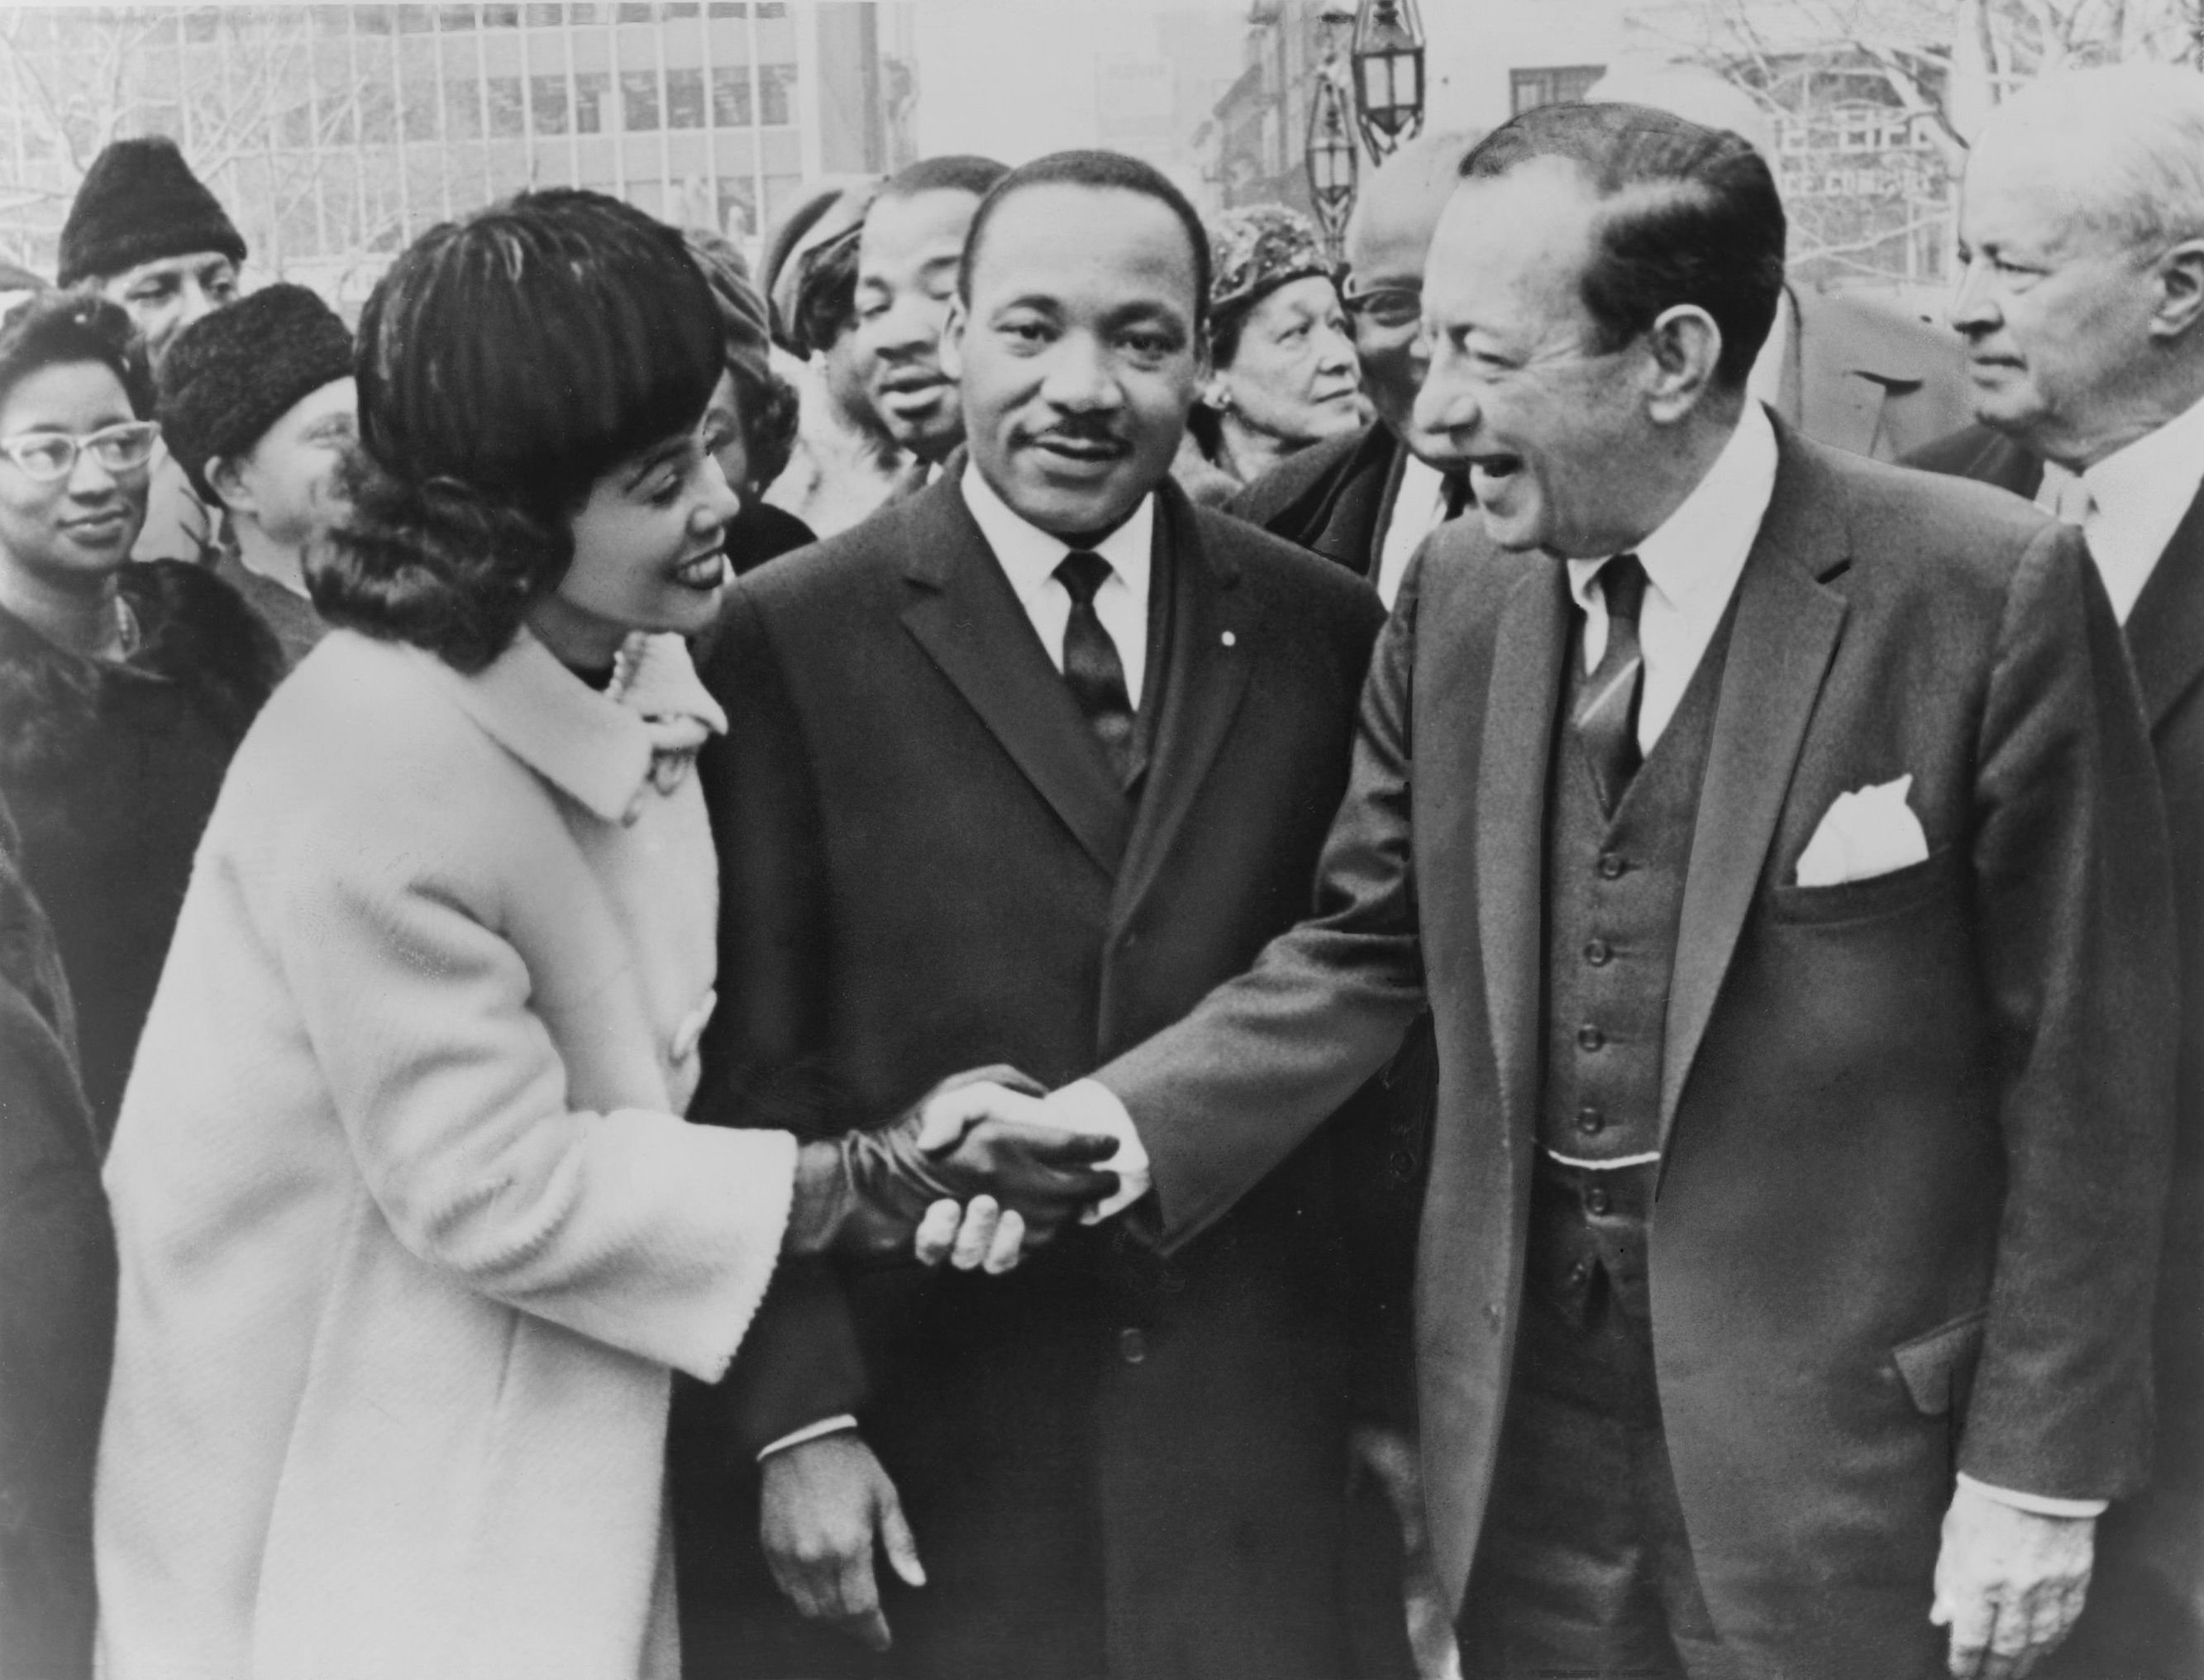 coretta scott king and martin luther king jr. at rally